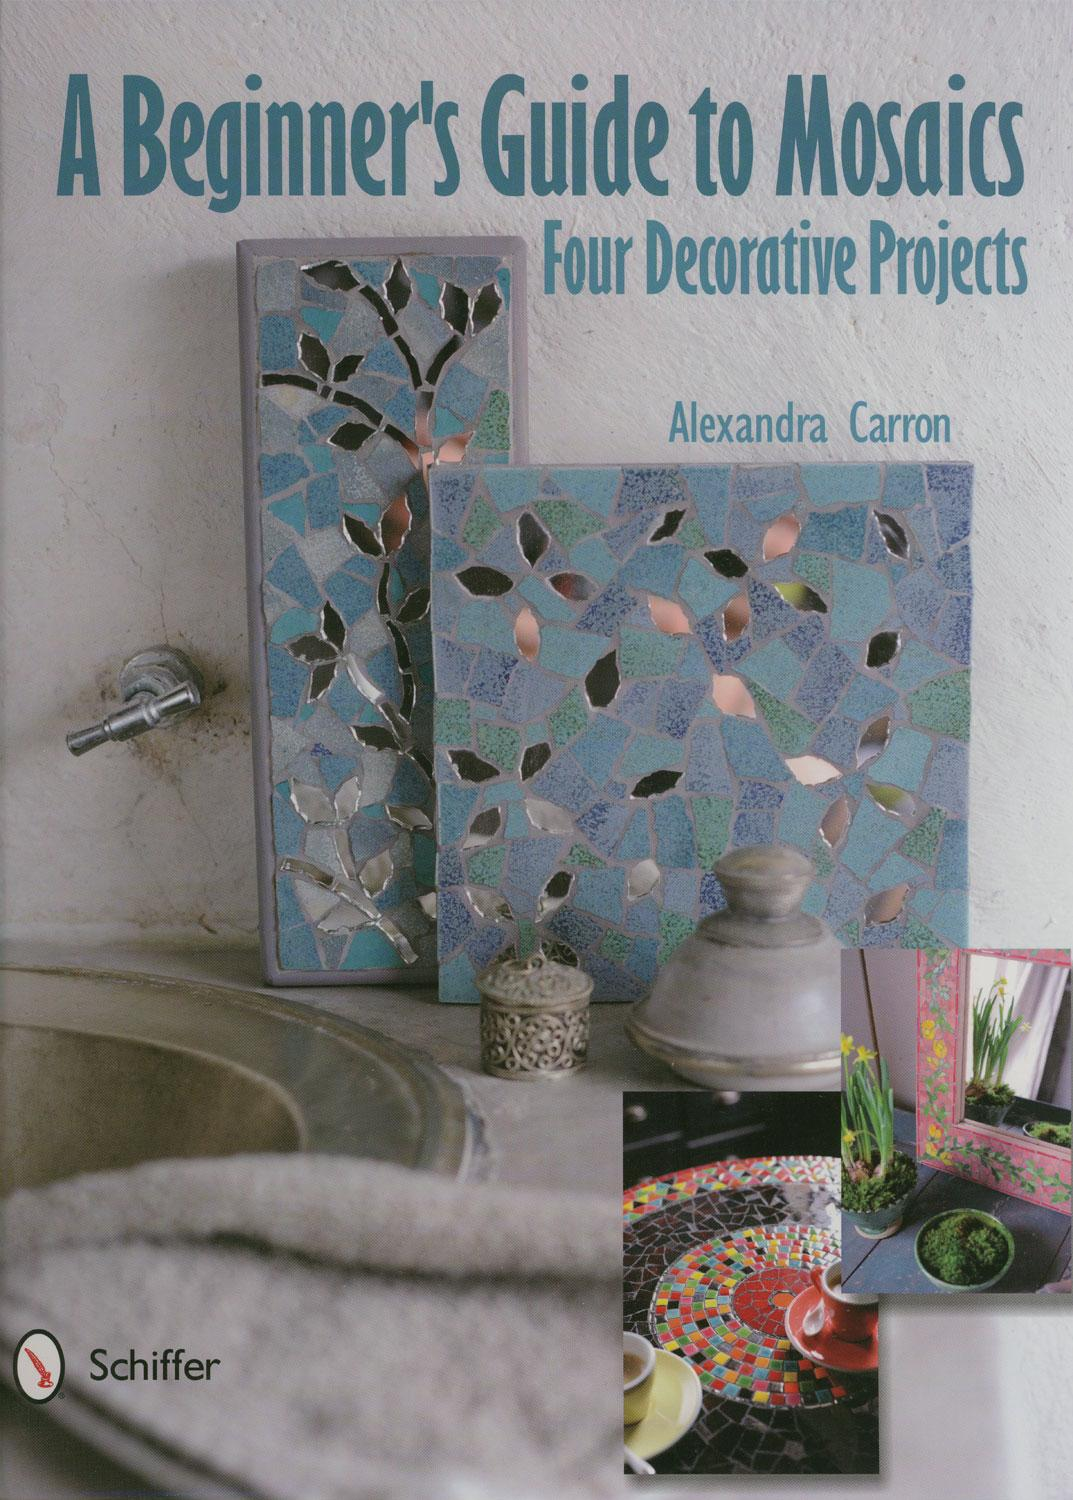 A Beginner's Guide to Mosaics - Four Decorative Projects